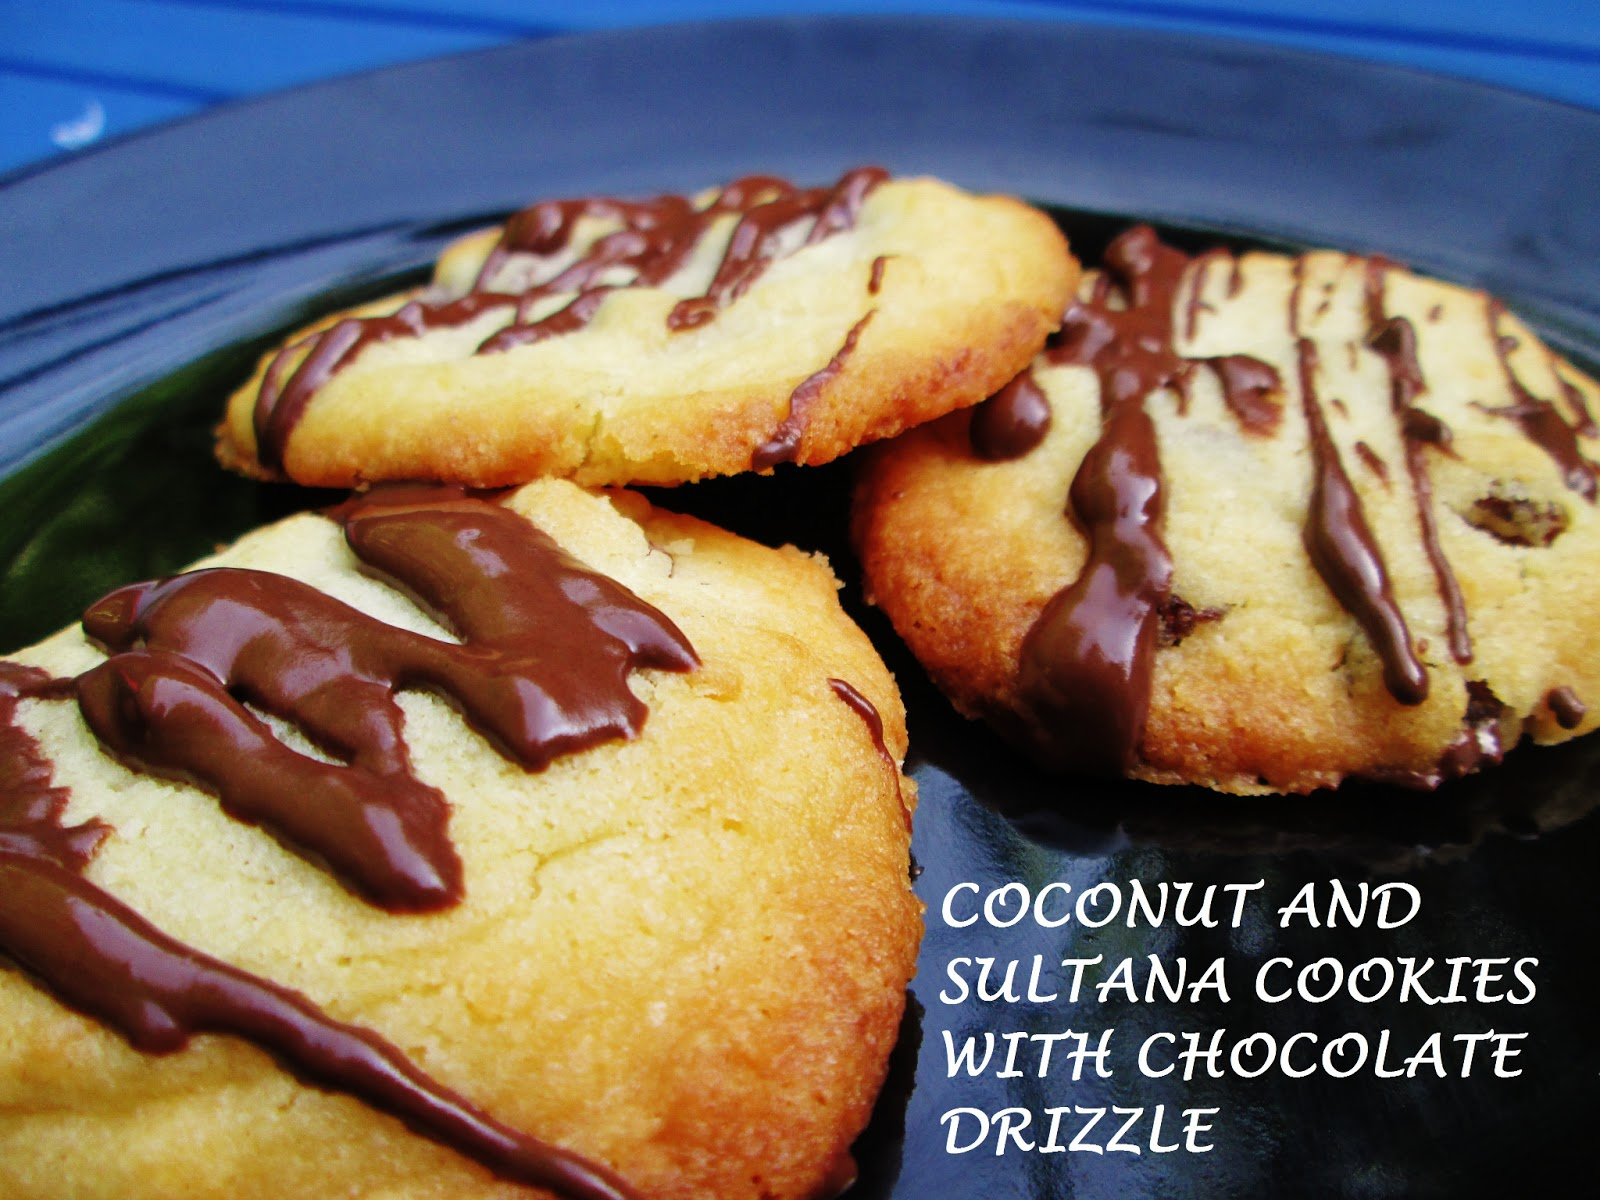 http://themessykitchenuk.blogspot.co.uk/2013/07/coconut-and-sultana-cookies-with.html